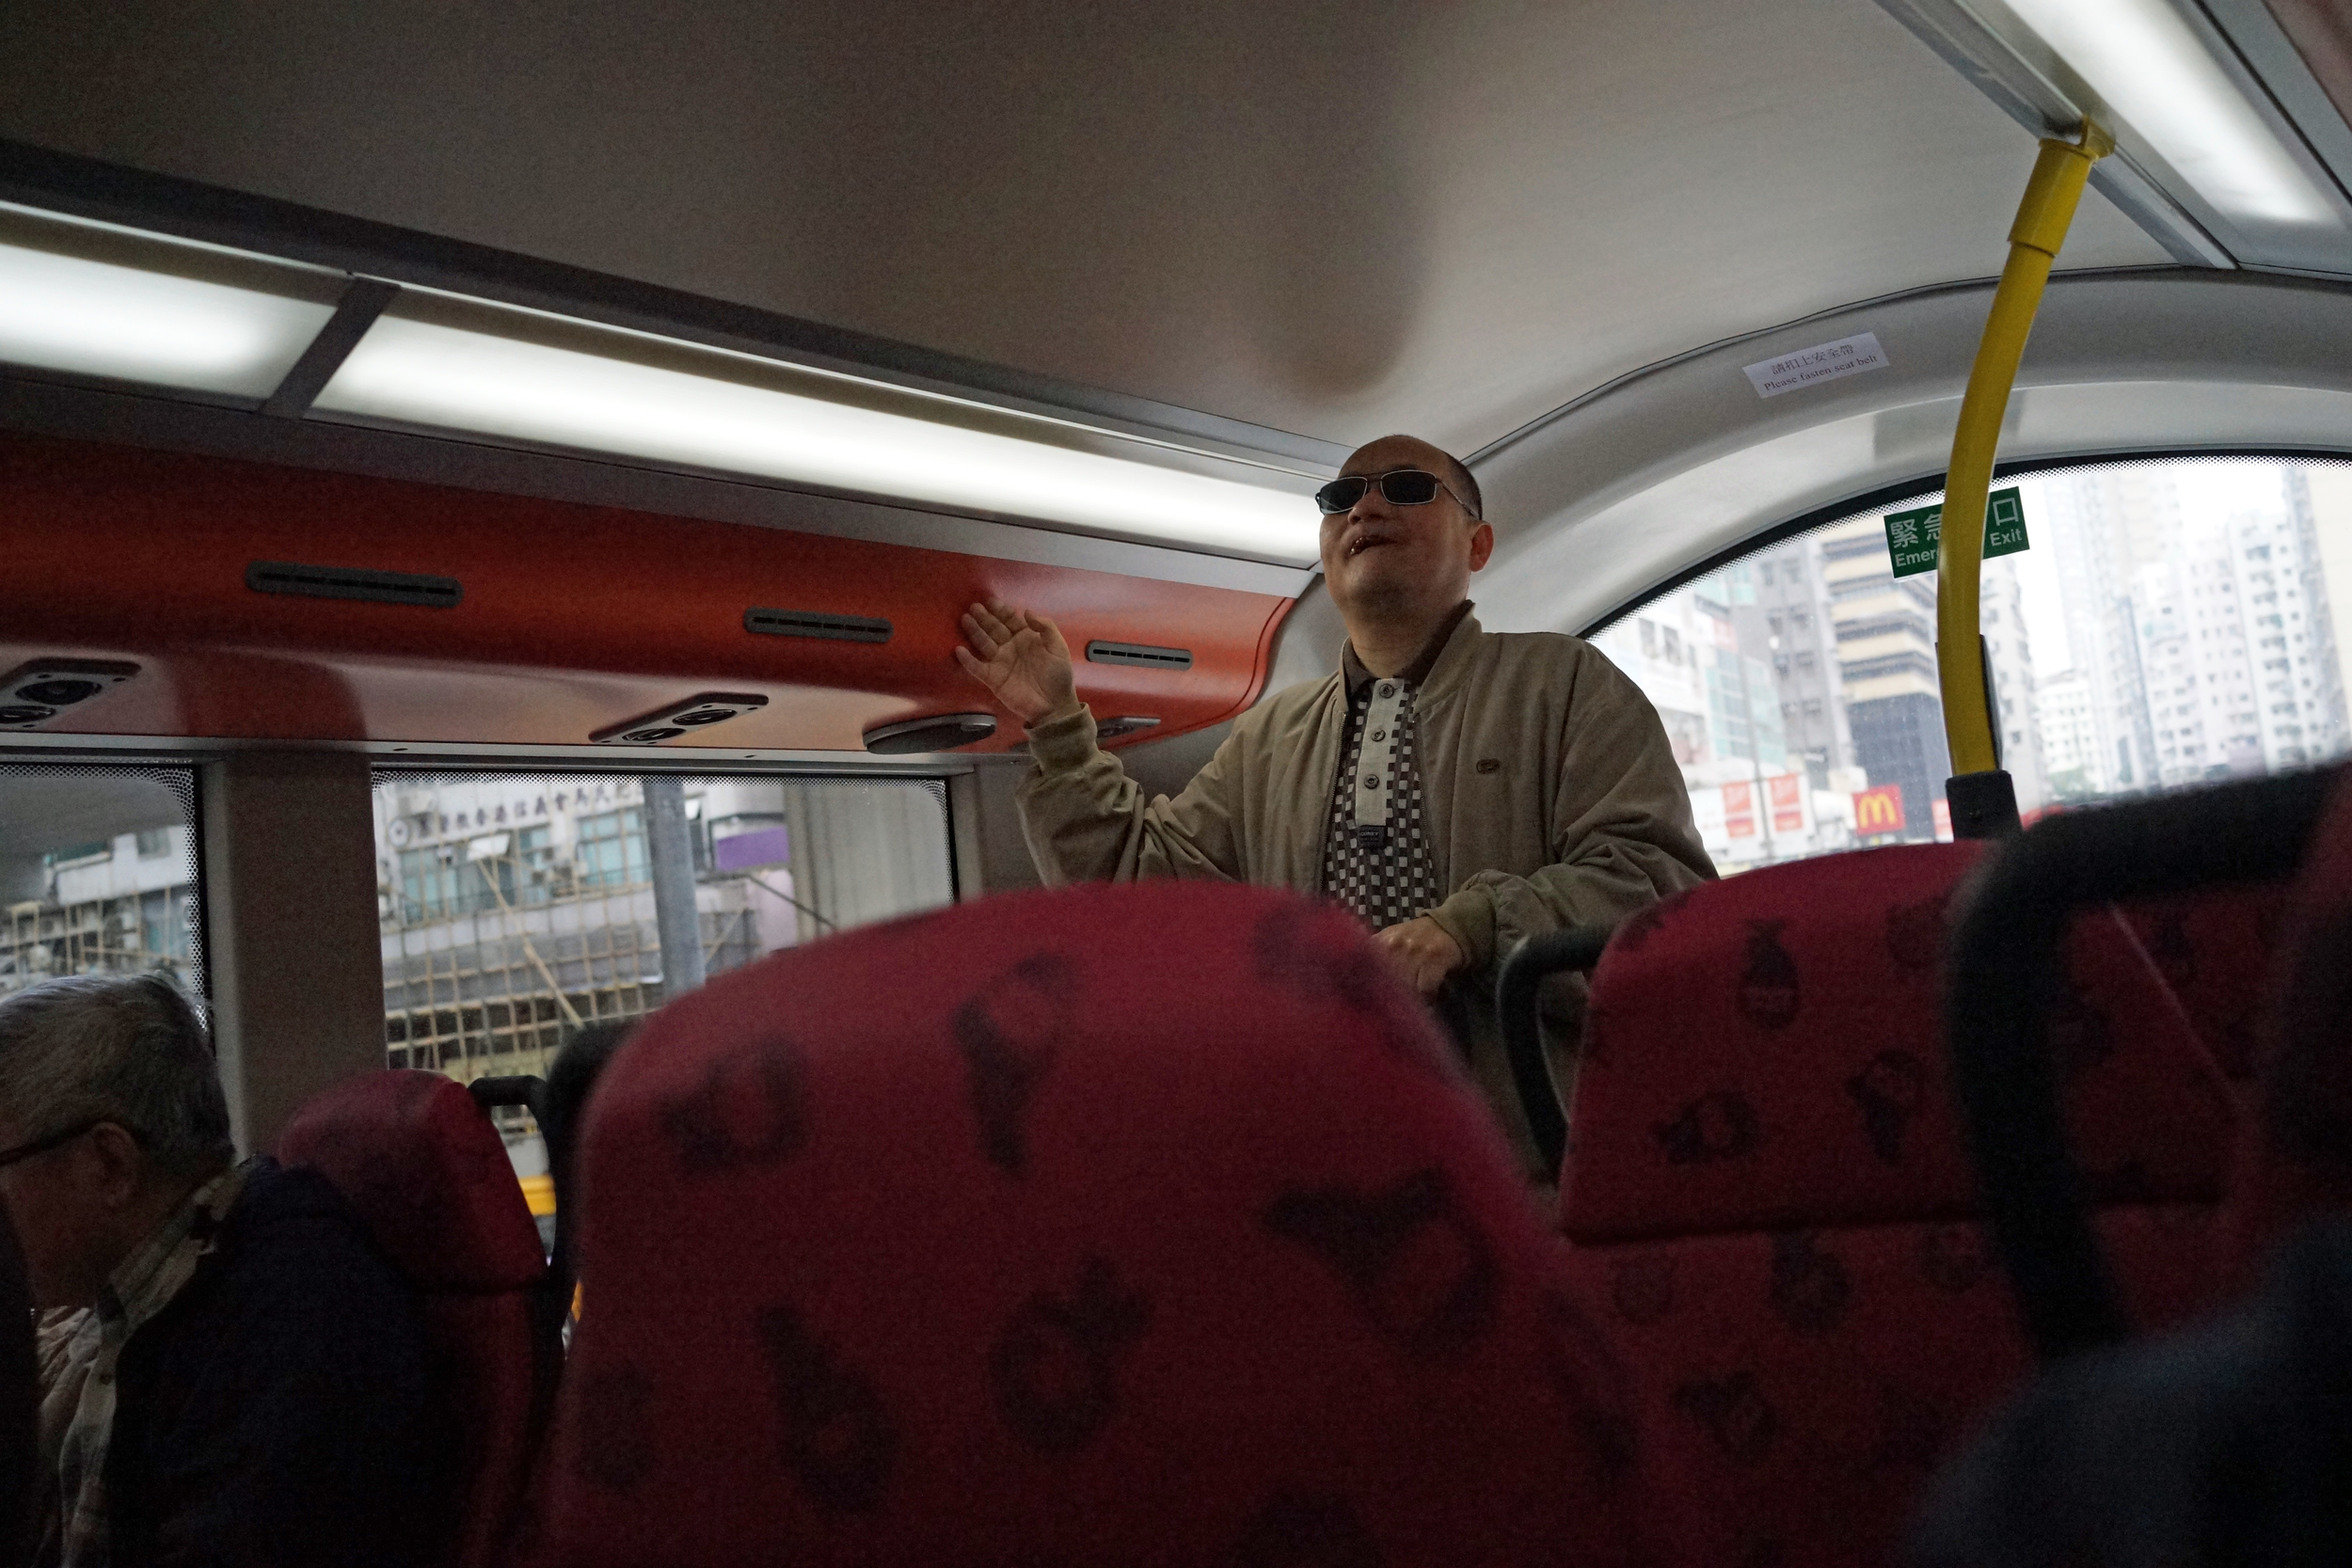 """The nutter on the bus - one of my favourite comedy sketches is the """"nutter on the bus"""" by Jasper Carrott, he hits the nail right on the head. This ever so slightly odd chap was doing a really good Stevie Wonder impression right behind me, I attract all the nutters! -"""